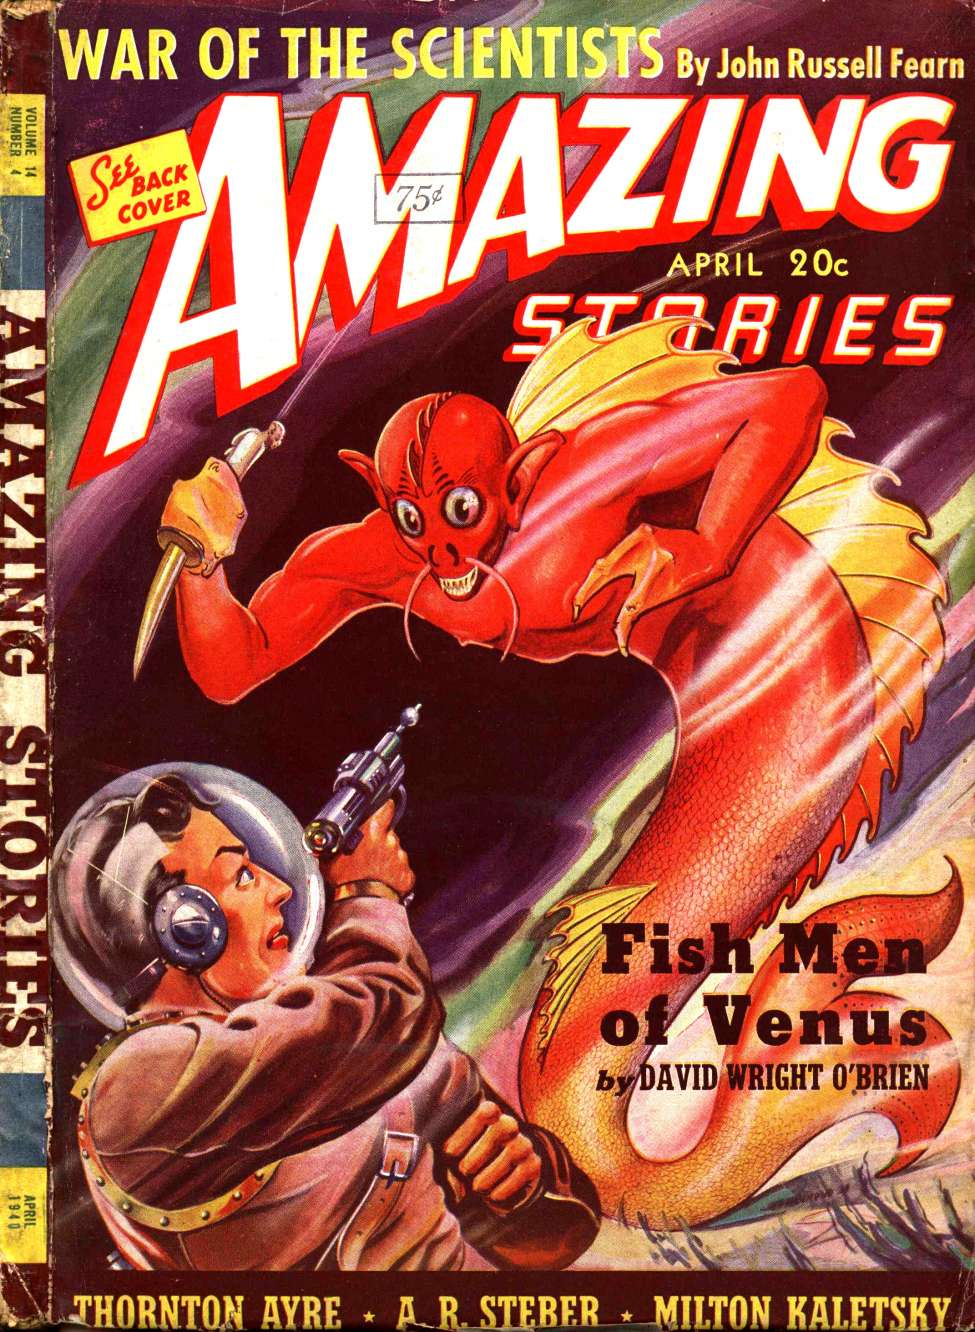 Comic Book Cover For Amazing Stories v14 04 - Fish Men of Venus - David Wright O'Brien